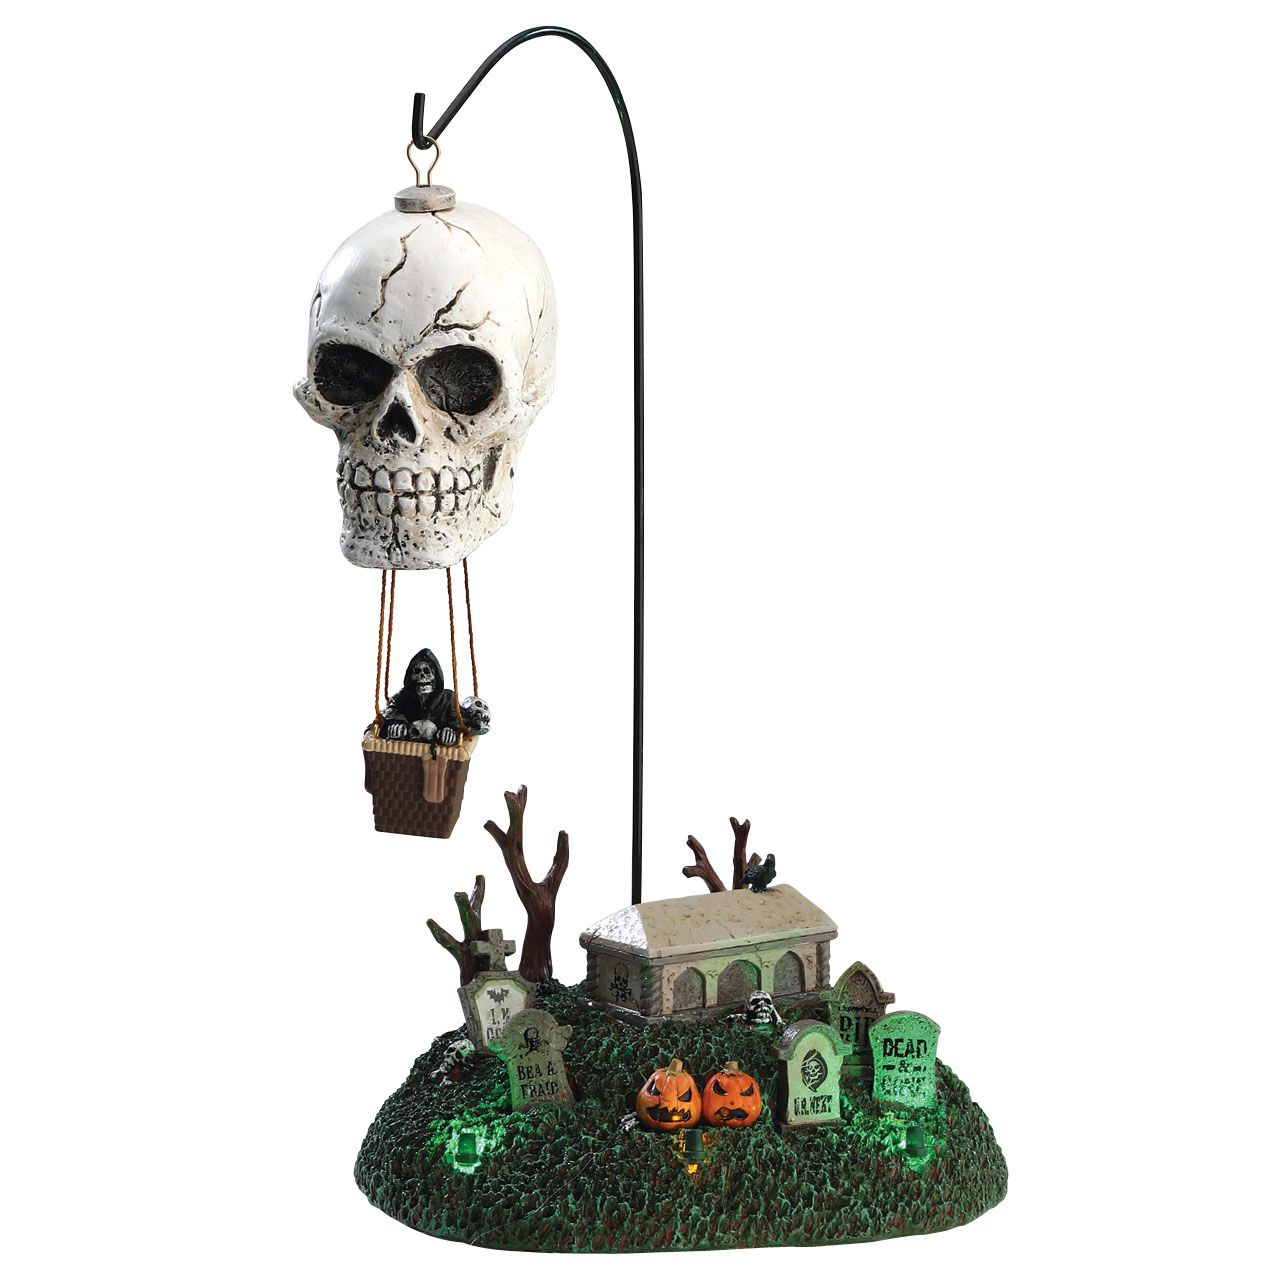 Lemax Reaper's Landing.  SKU# 74202. Released in 2017 as a Sights & Sounds piece for the Lemax Spooky Town Village Collection.